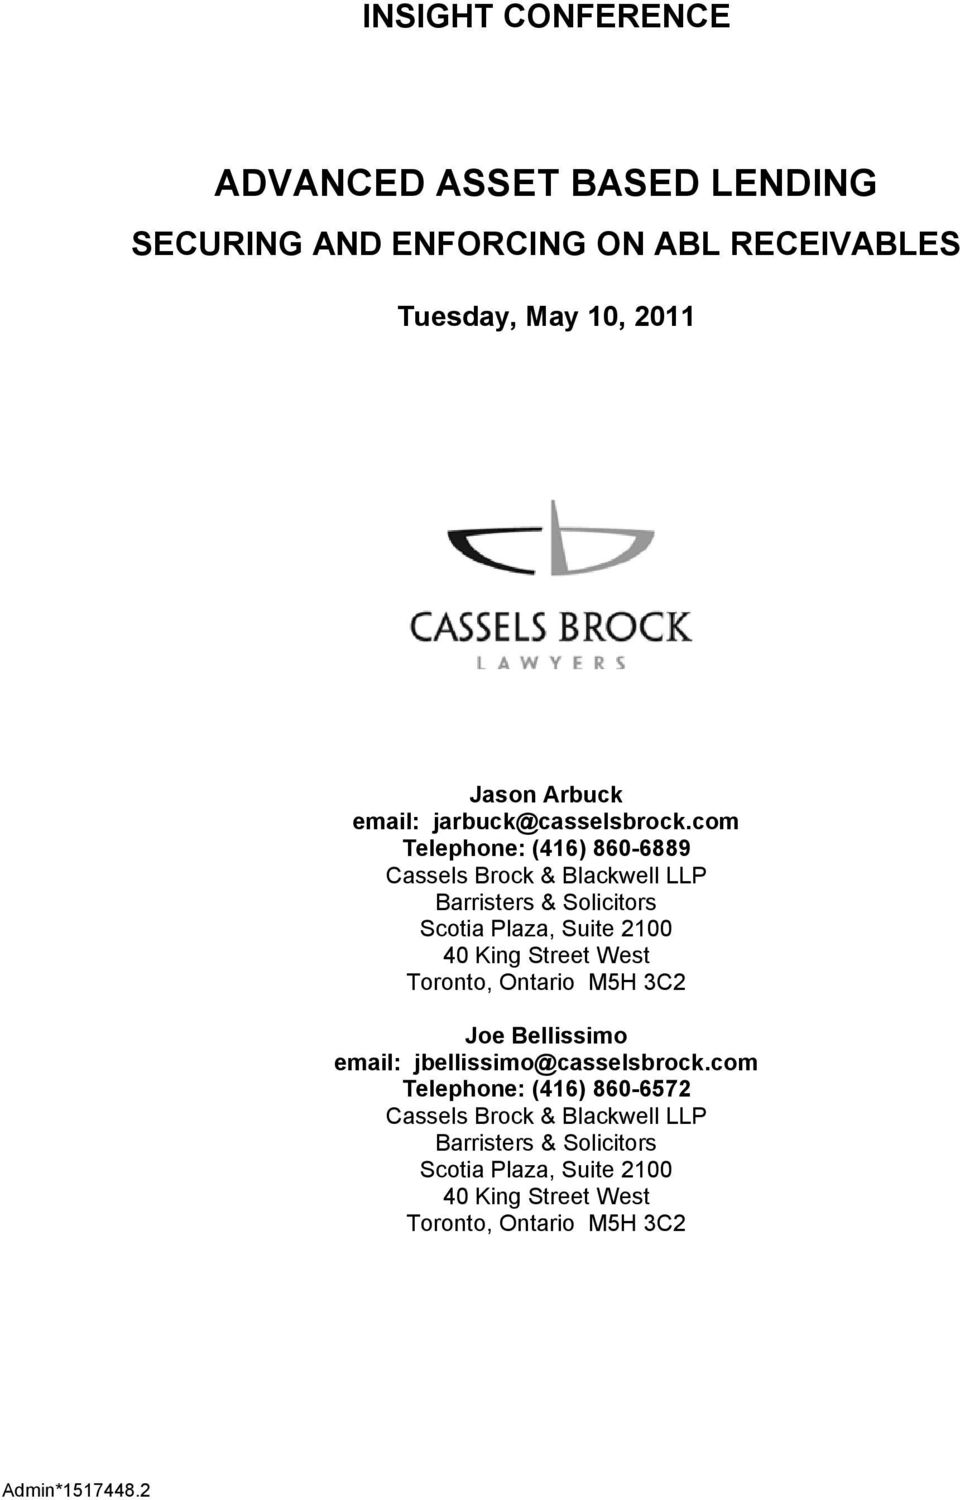 com Telephone: (416) 860-6889 Cassels Brock & Blackwell LLP Barristers & Solicitors Scotia Plaza, Suite 2100 40 King Street West